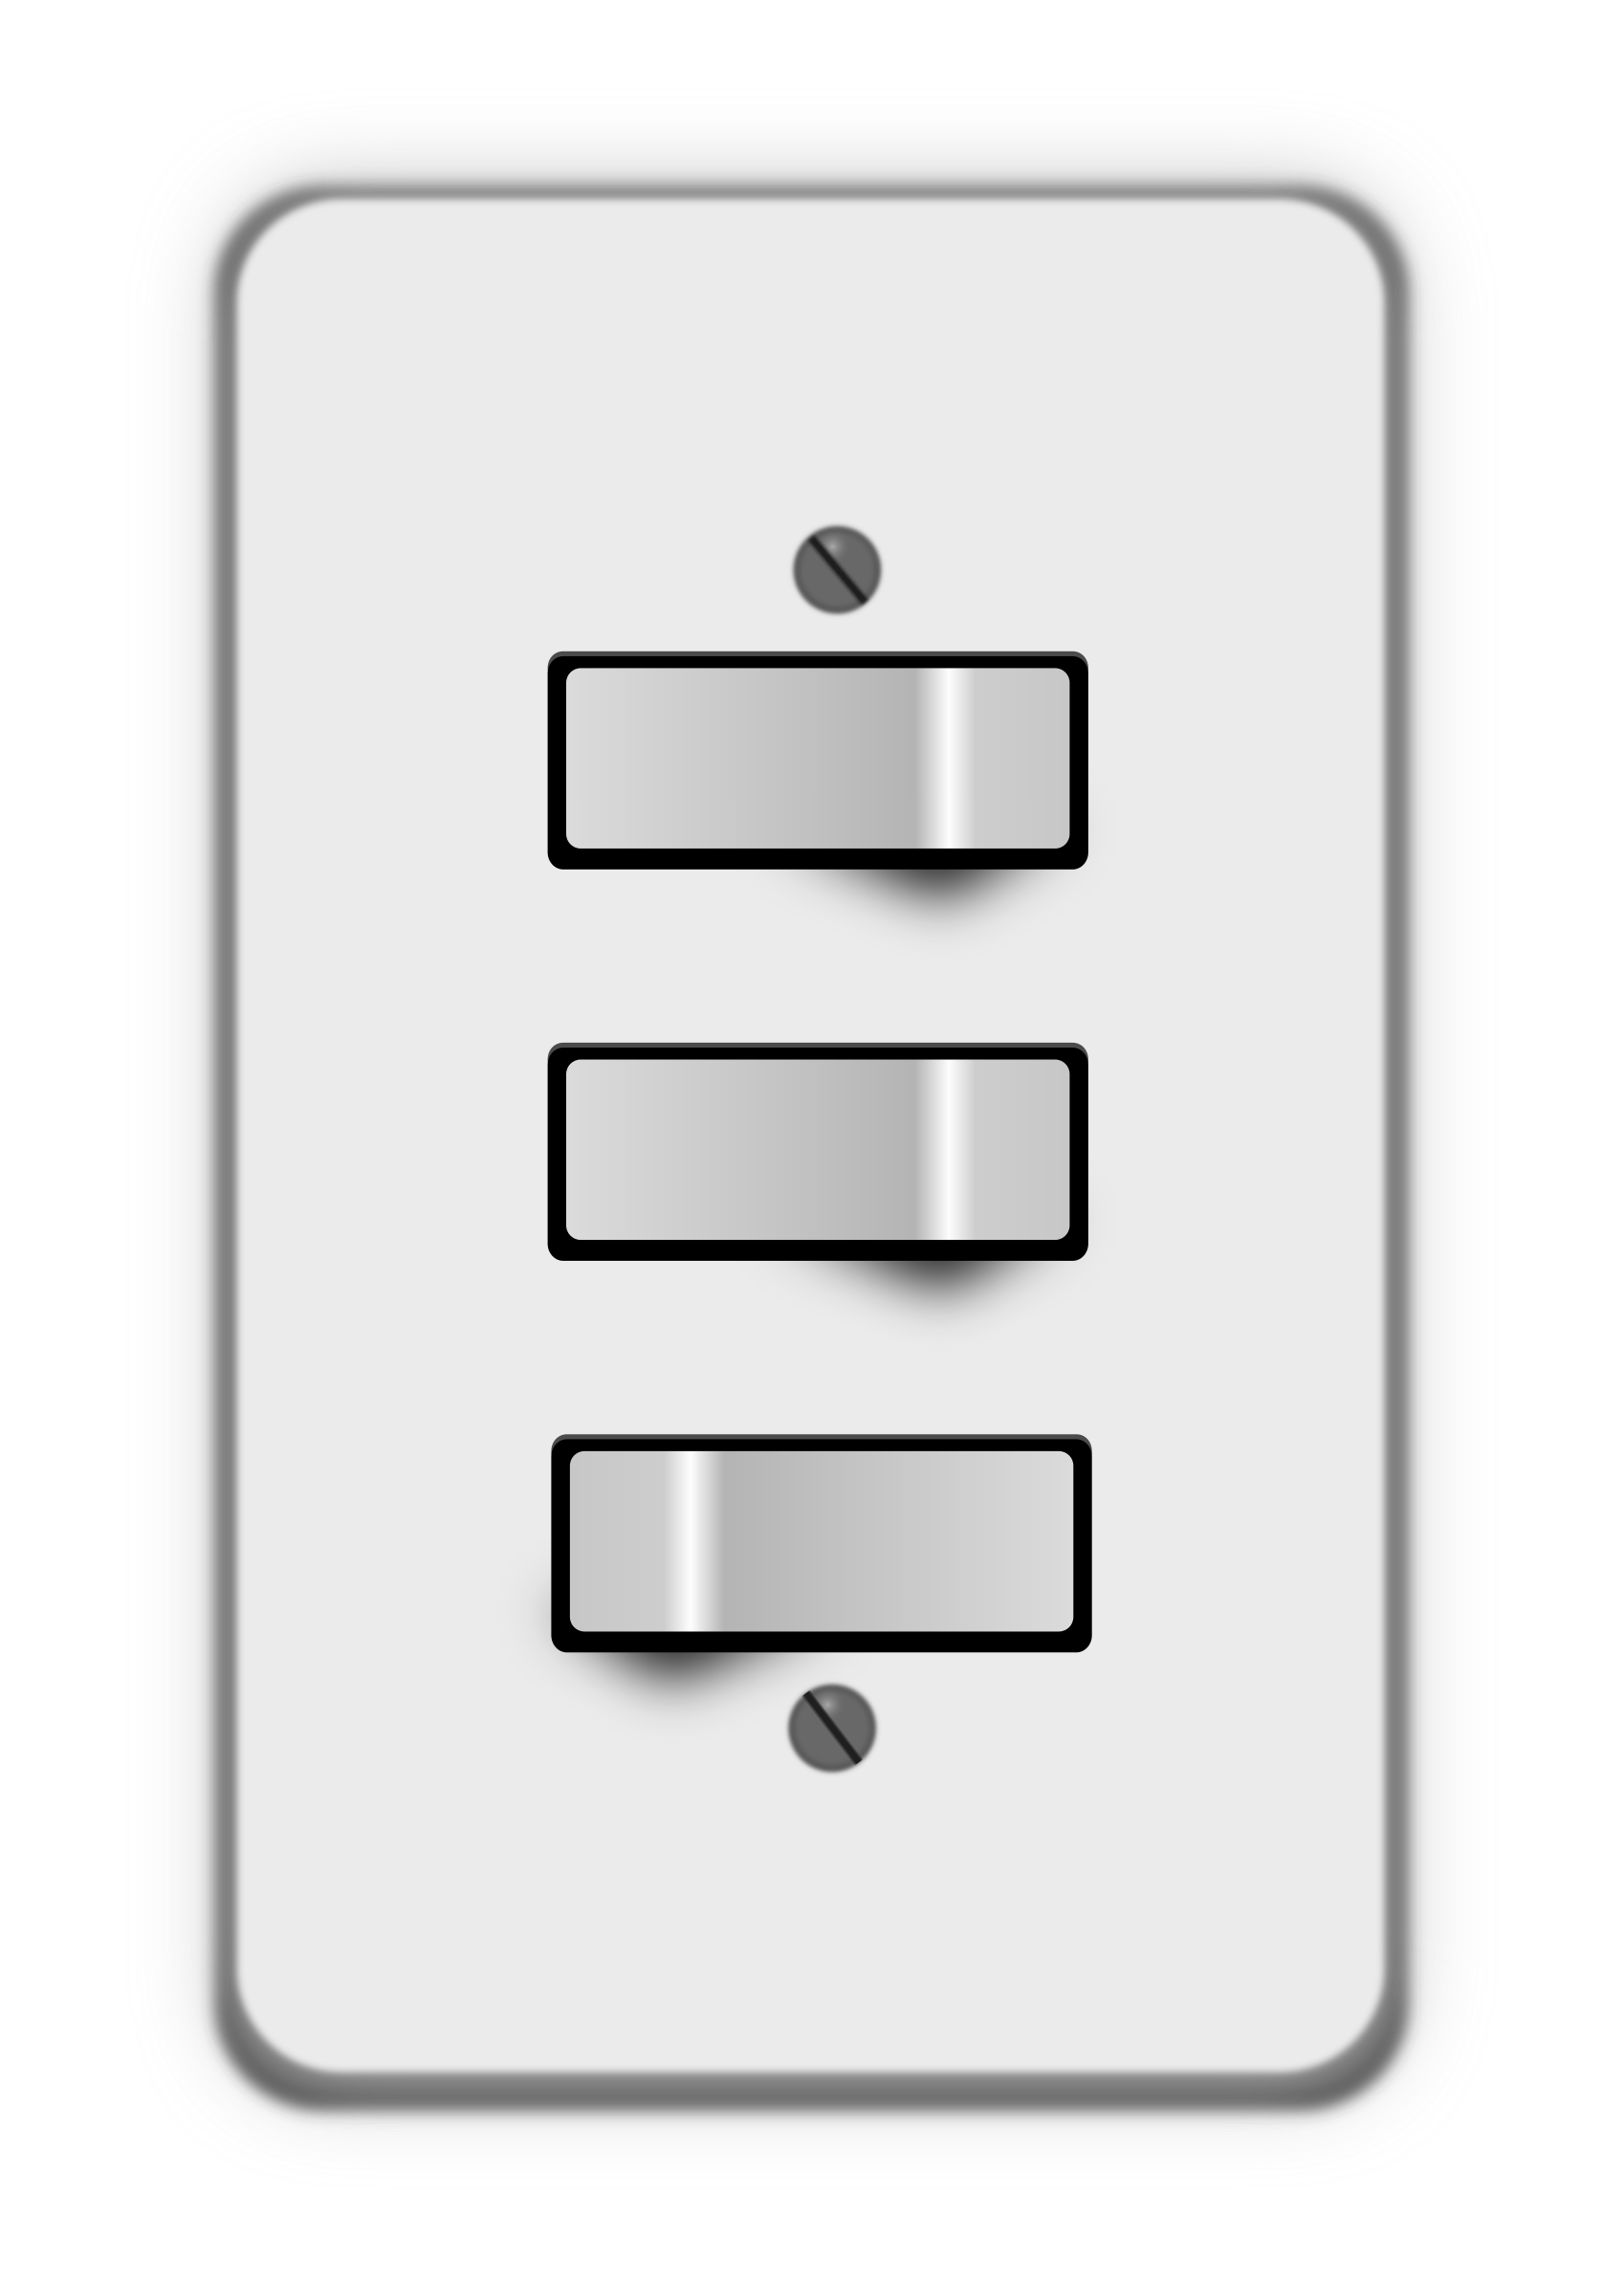 Light switch, 3 switches (two off) by lumbricus